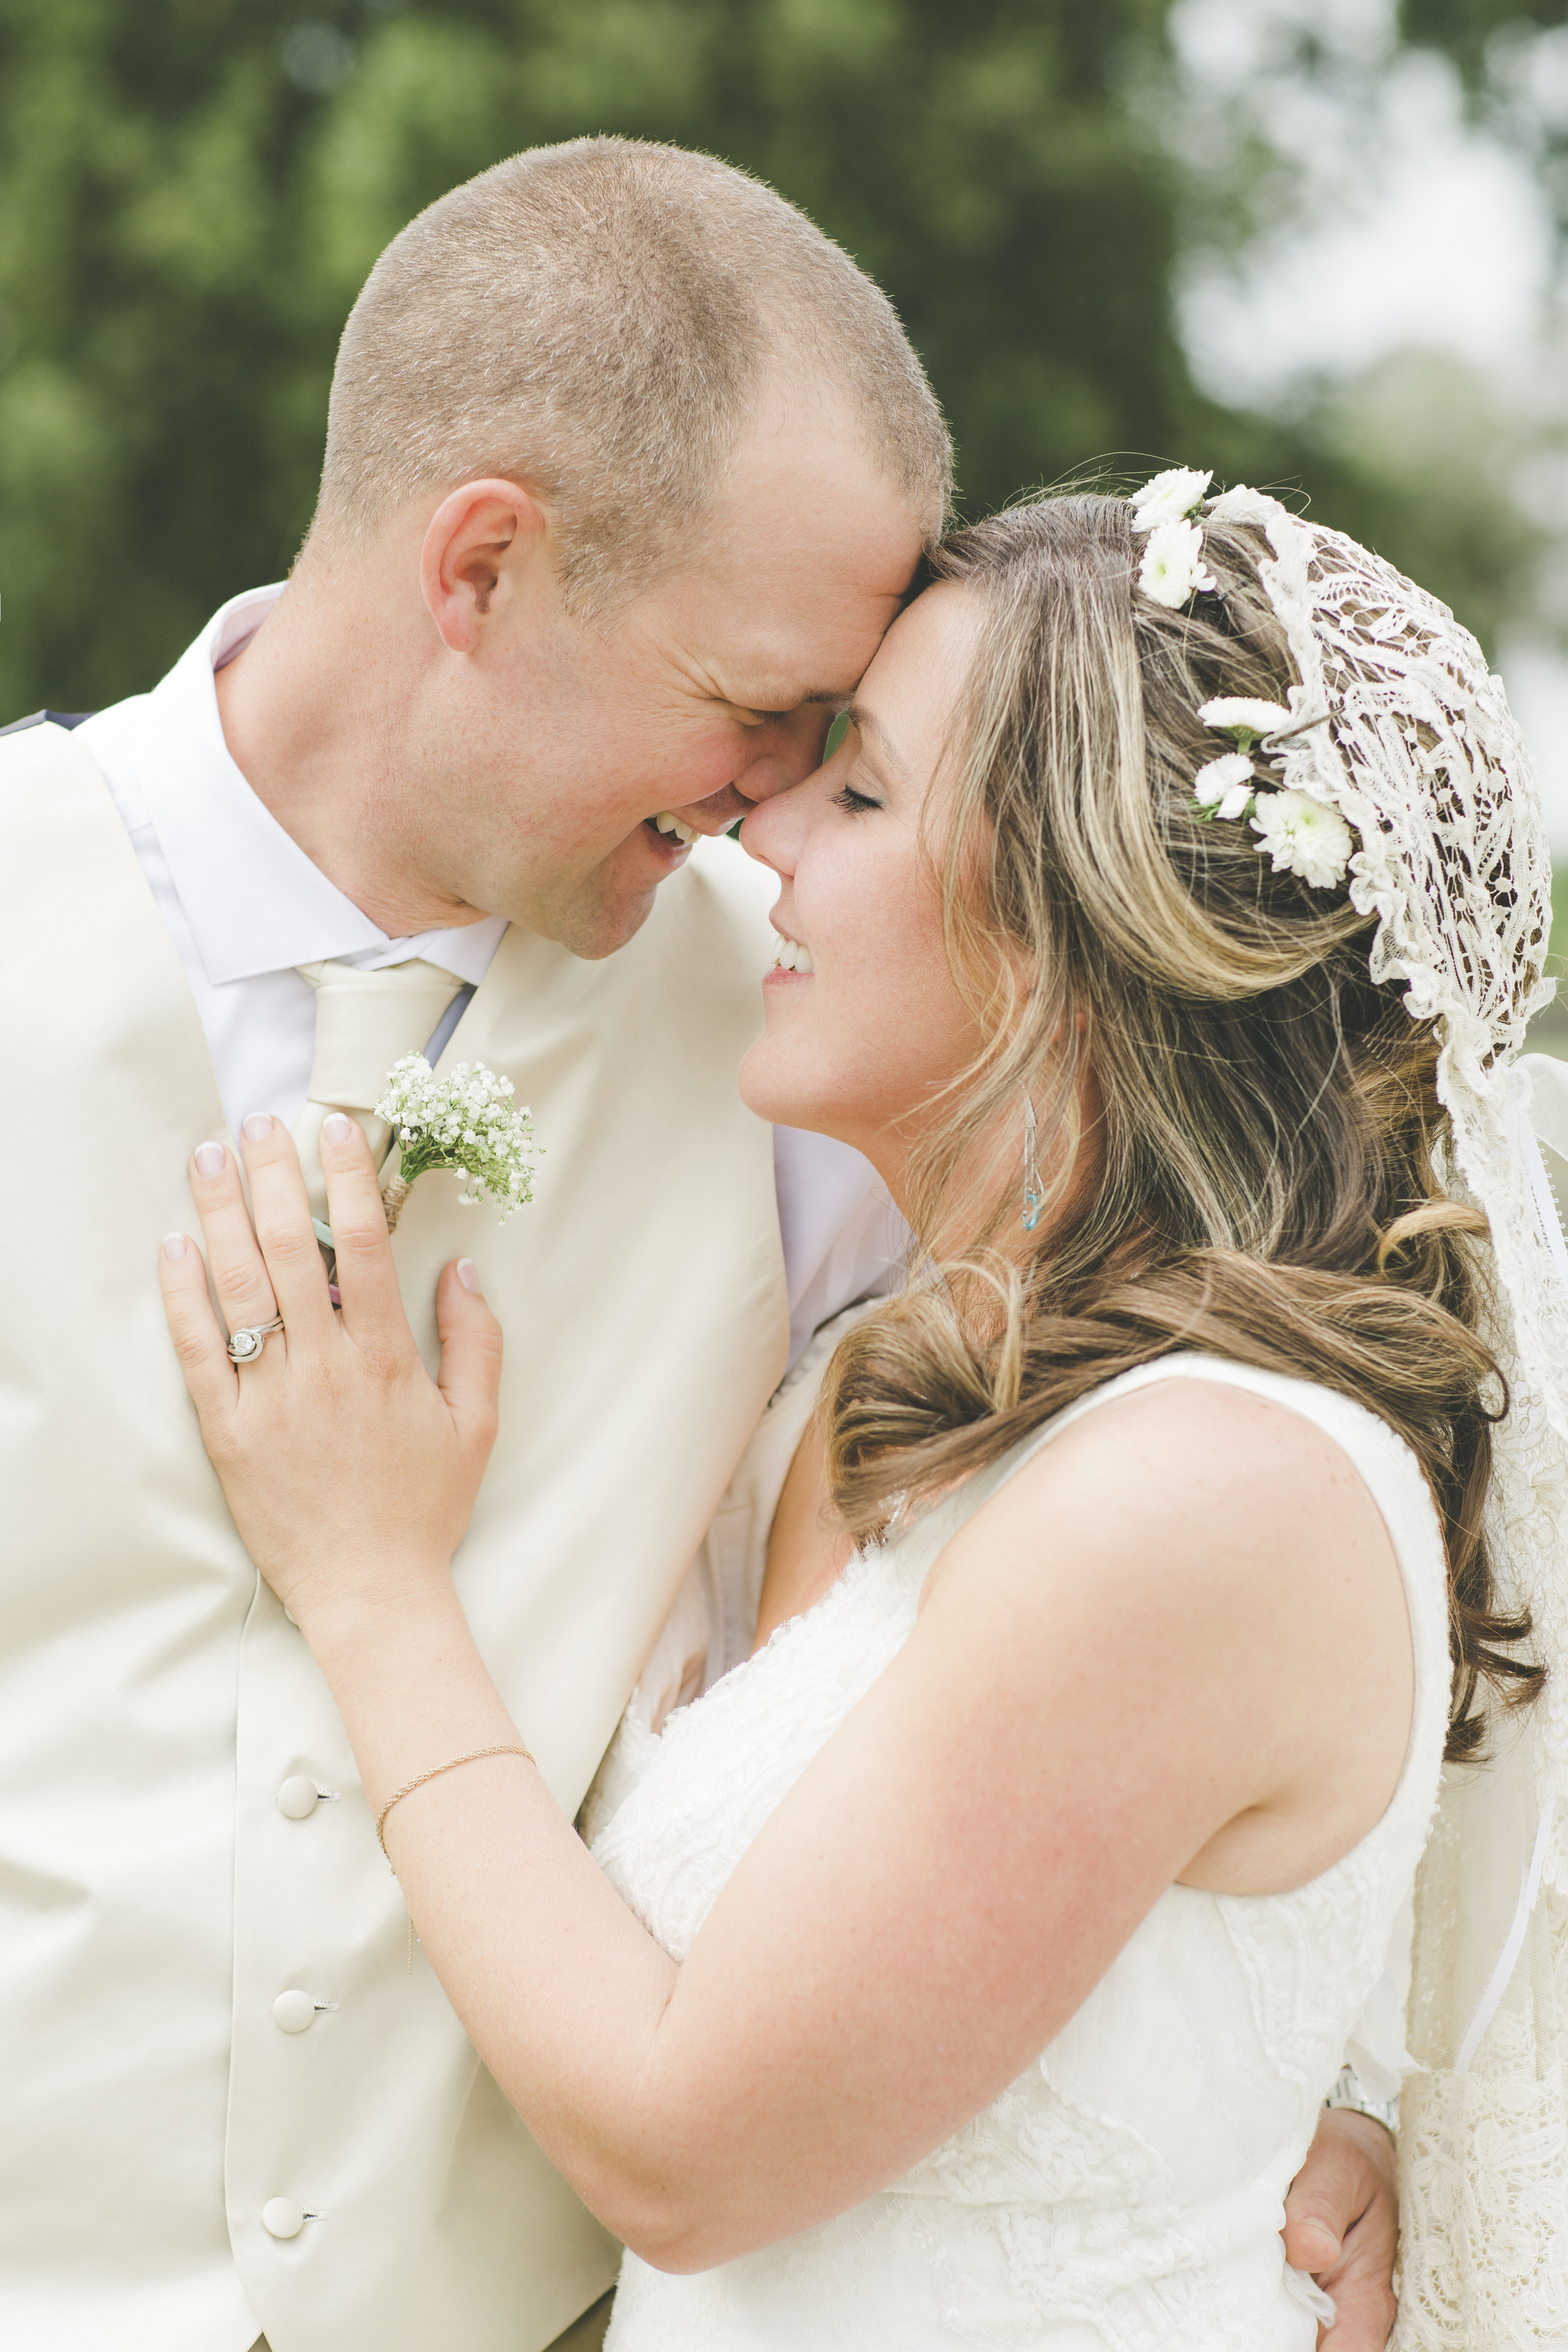 Cate & Chris | 4.2.15 - Photo by  Julia Lukash Photography